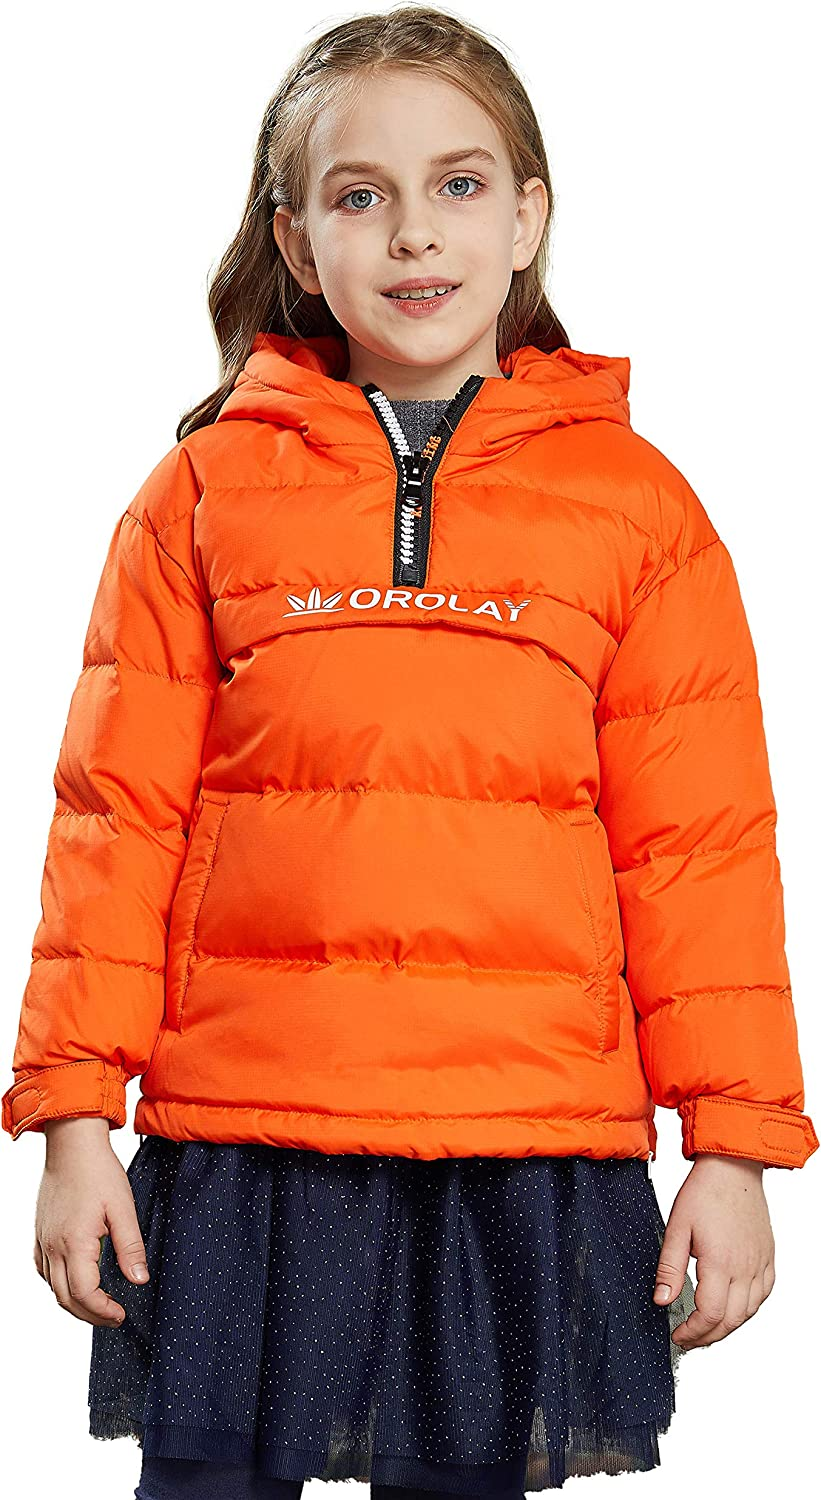 Orolay Girl's Packable Down Jacket Boy's Winter Coat Hooded Puffer Jackets